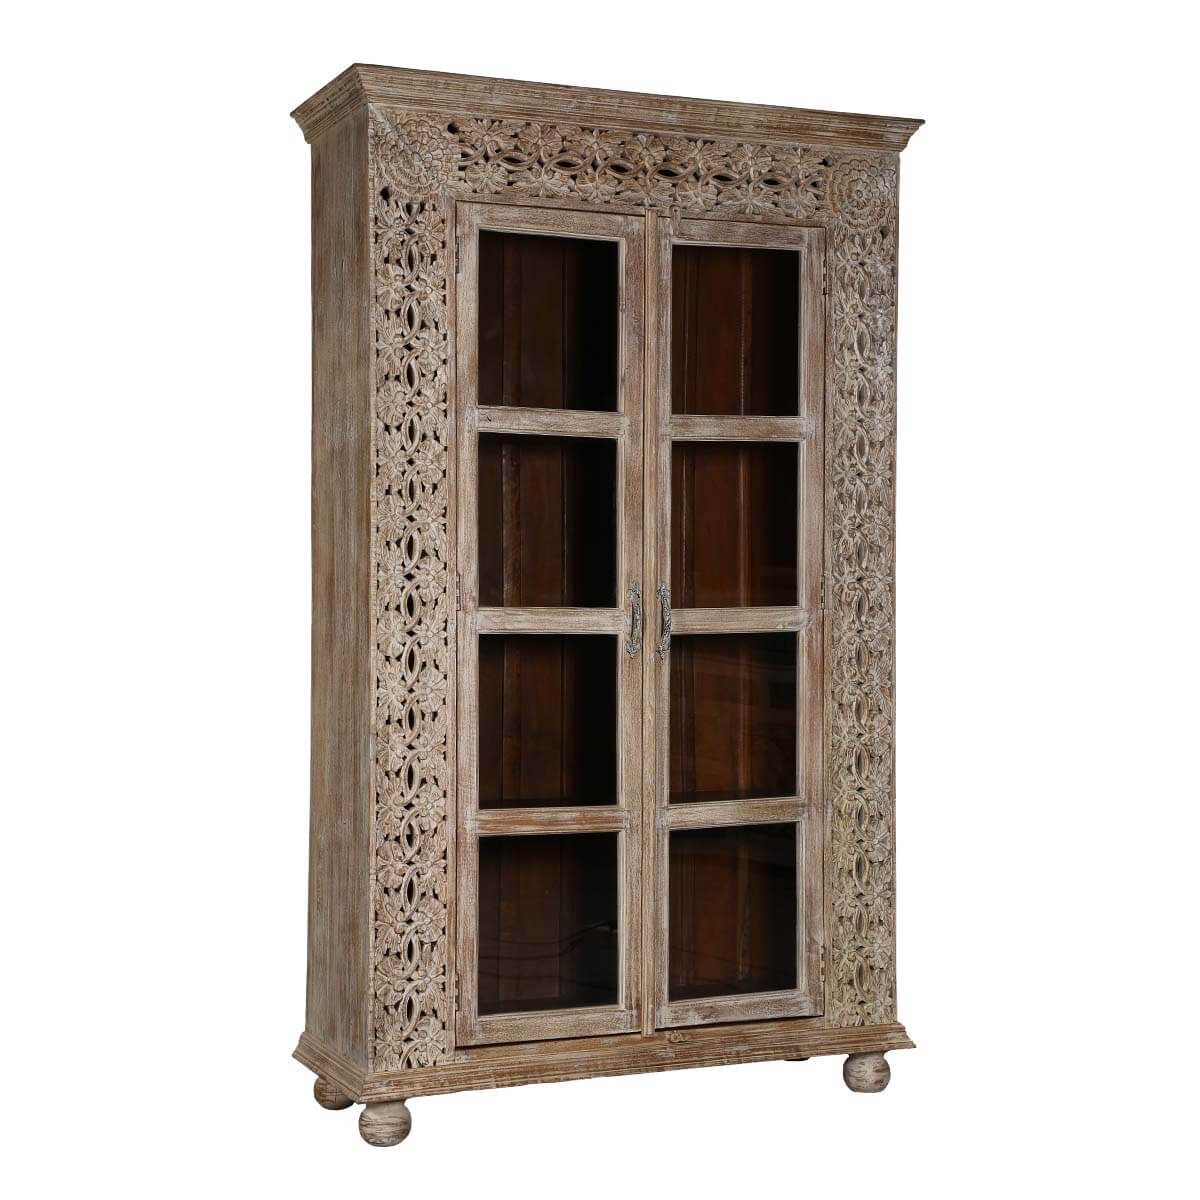 Dover Handcarved Rustic Solid Wood Tall Display Cabinet